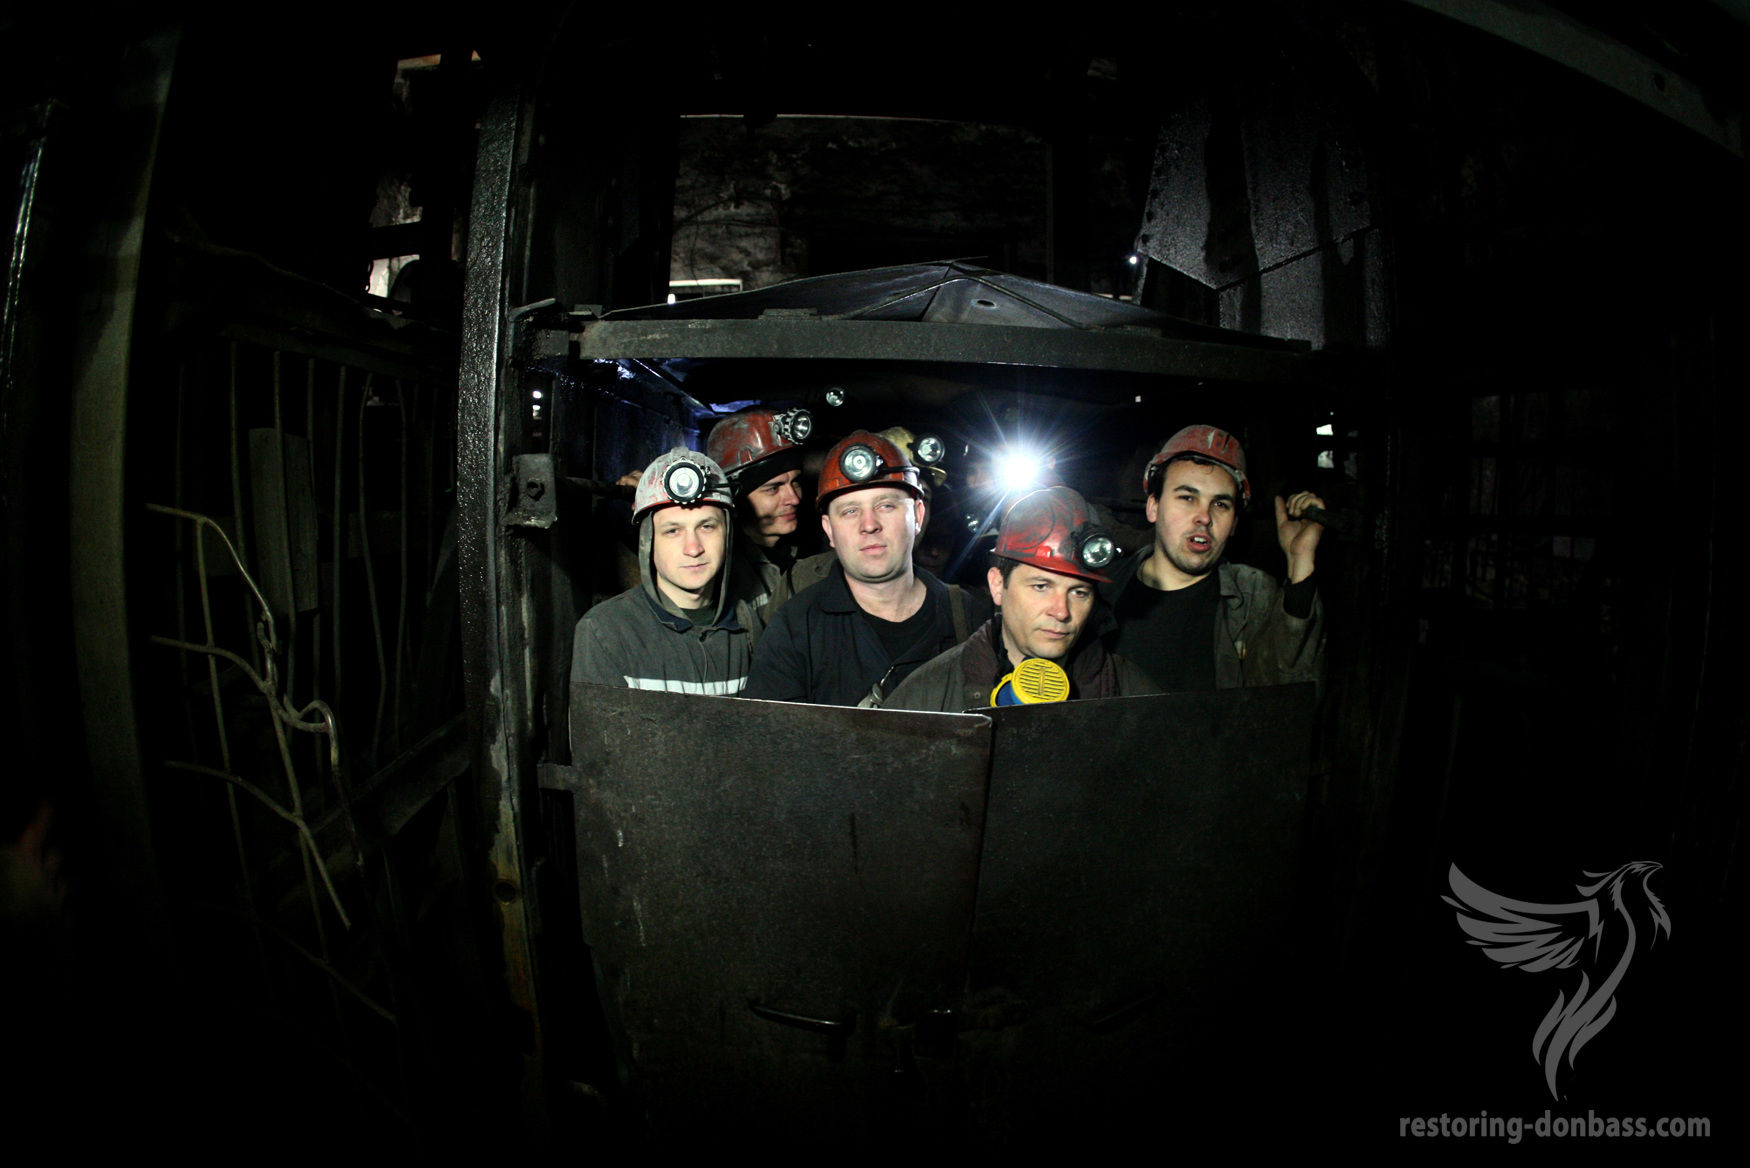 Miners of Makeyevka at work, March 31, 2015